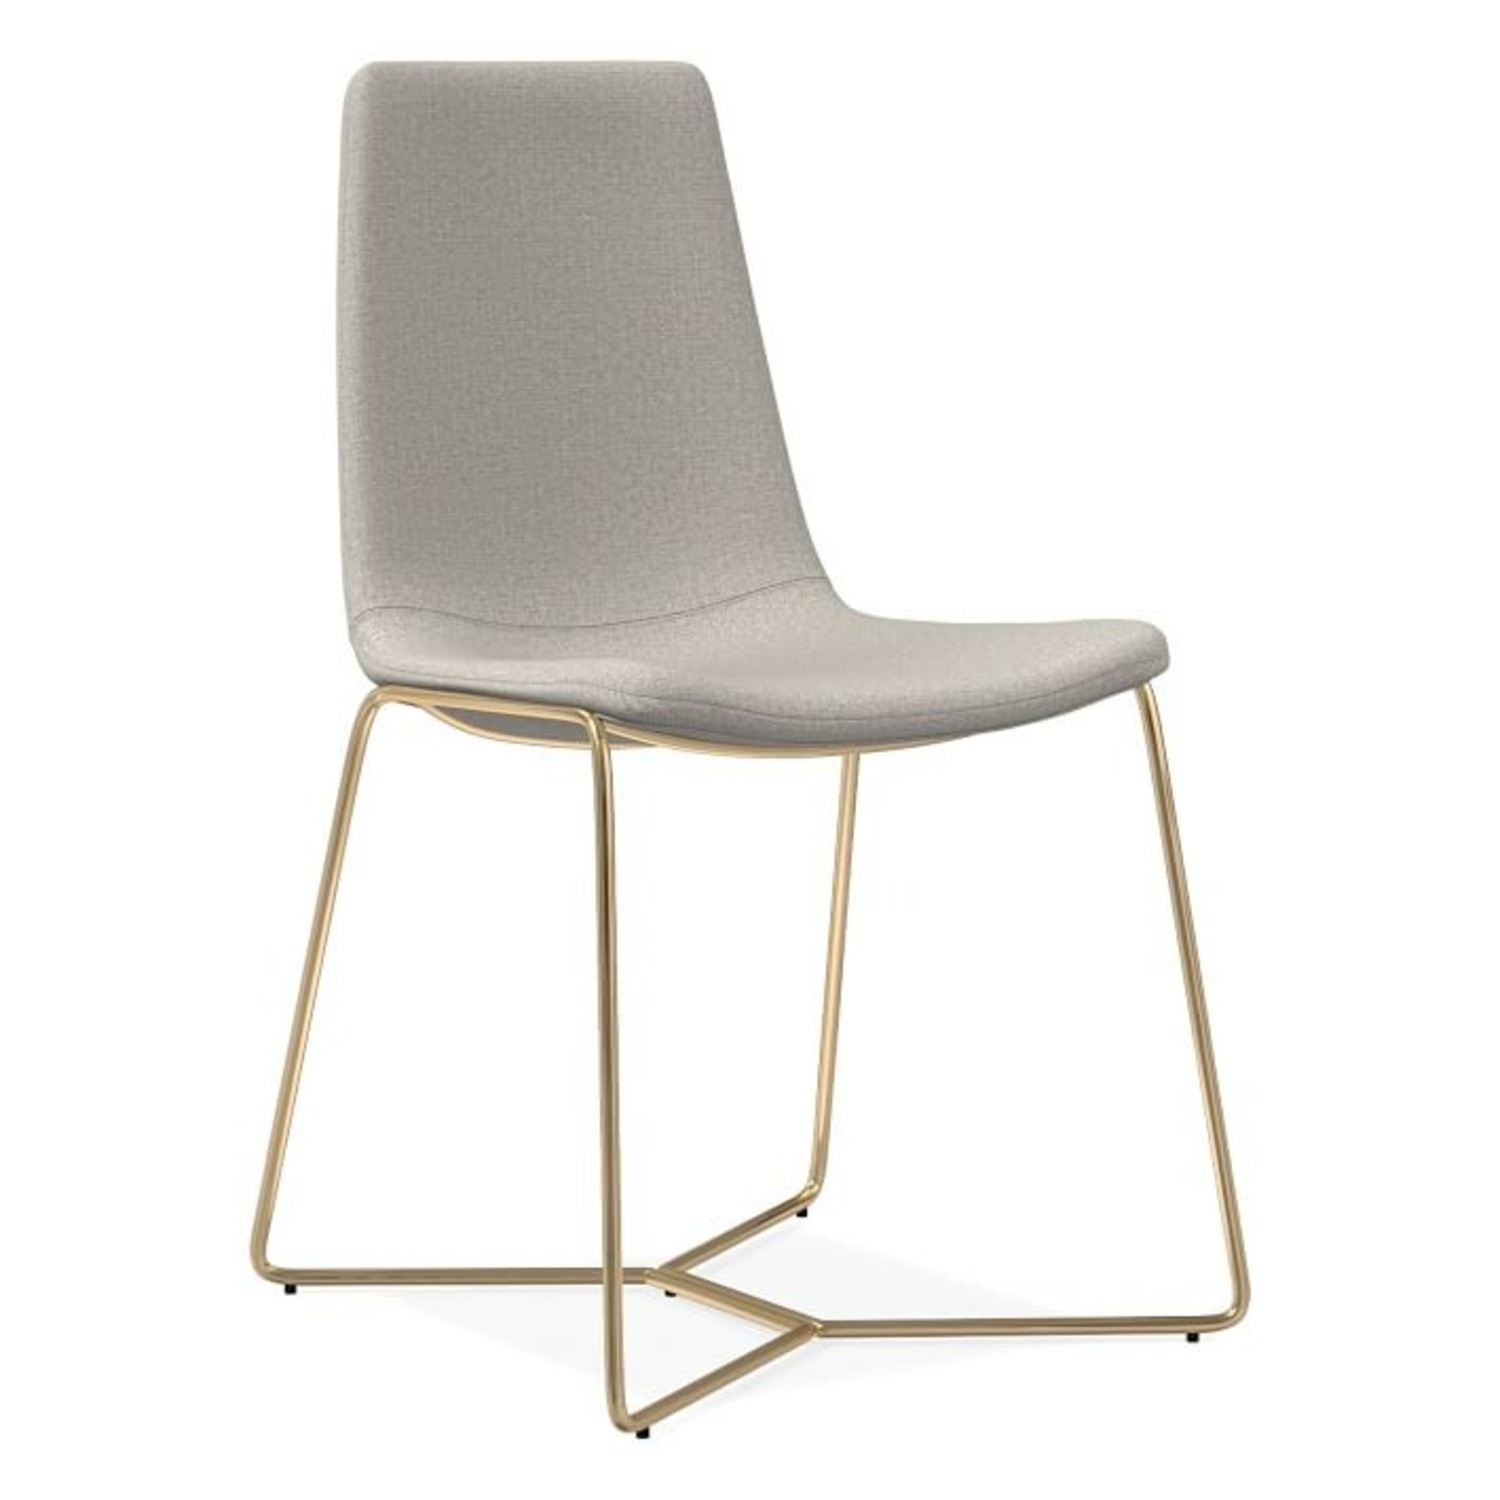 West Elm Slope Upholstered Dining Chair - image-1